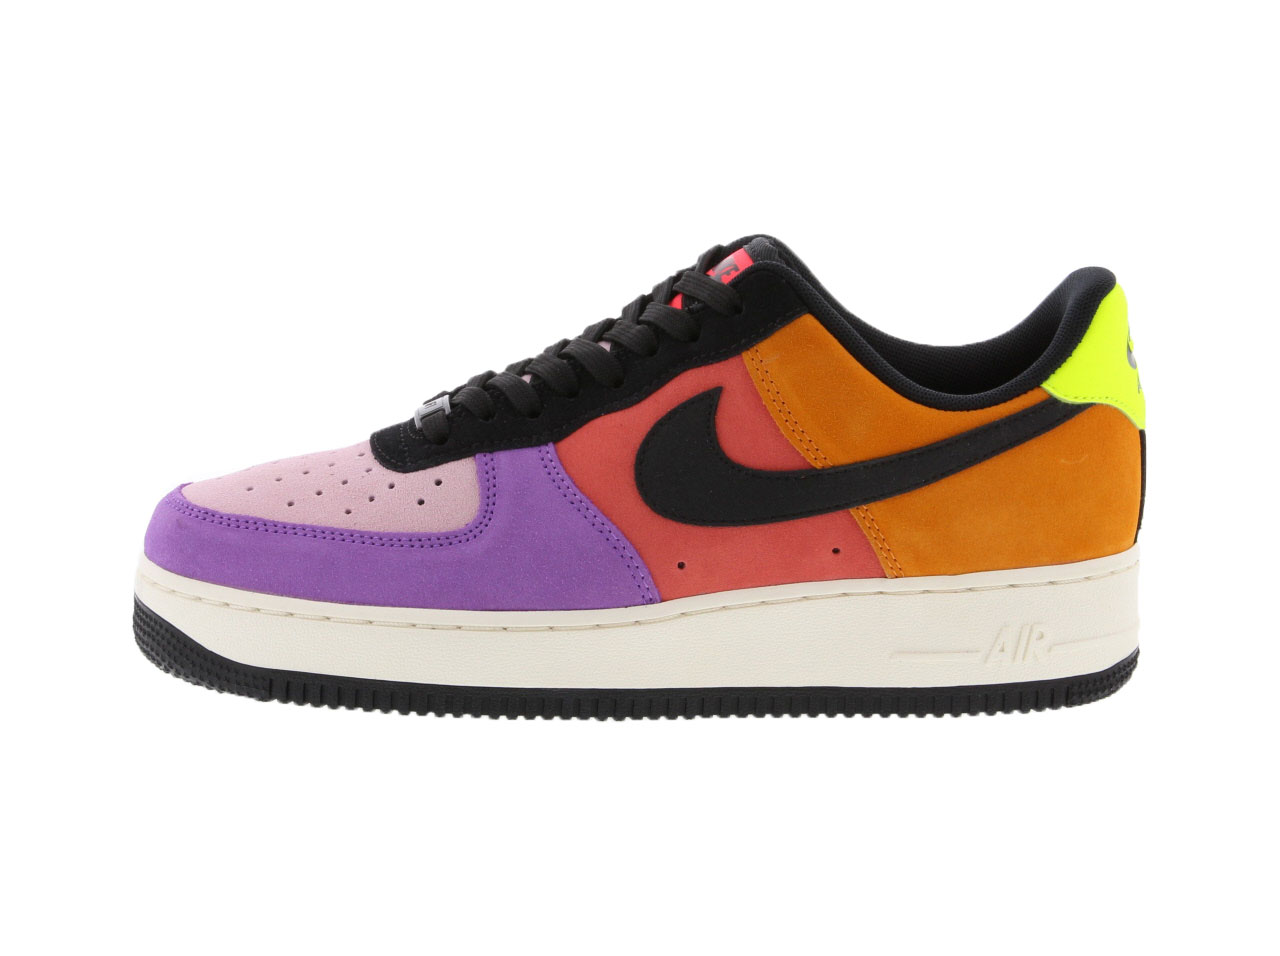 NIKE AIR FORCE 1 '07 LV8 – PRISM PINKFLASH CRIMSON CU1929